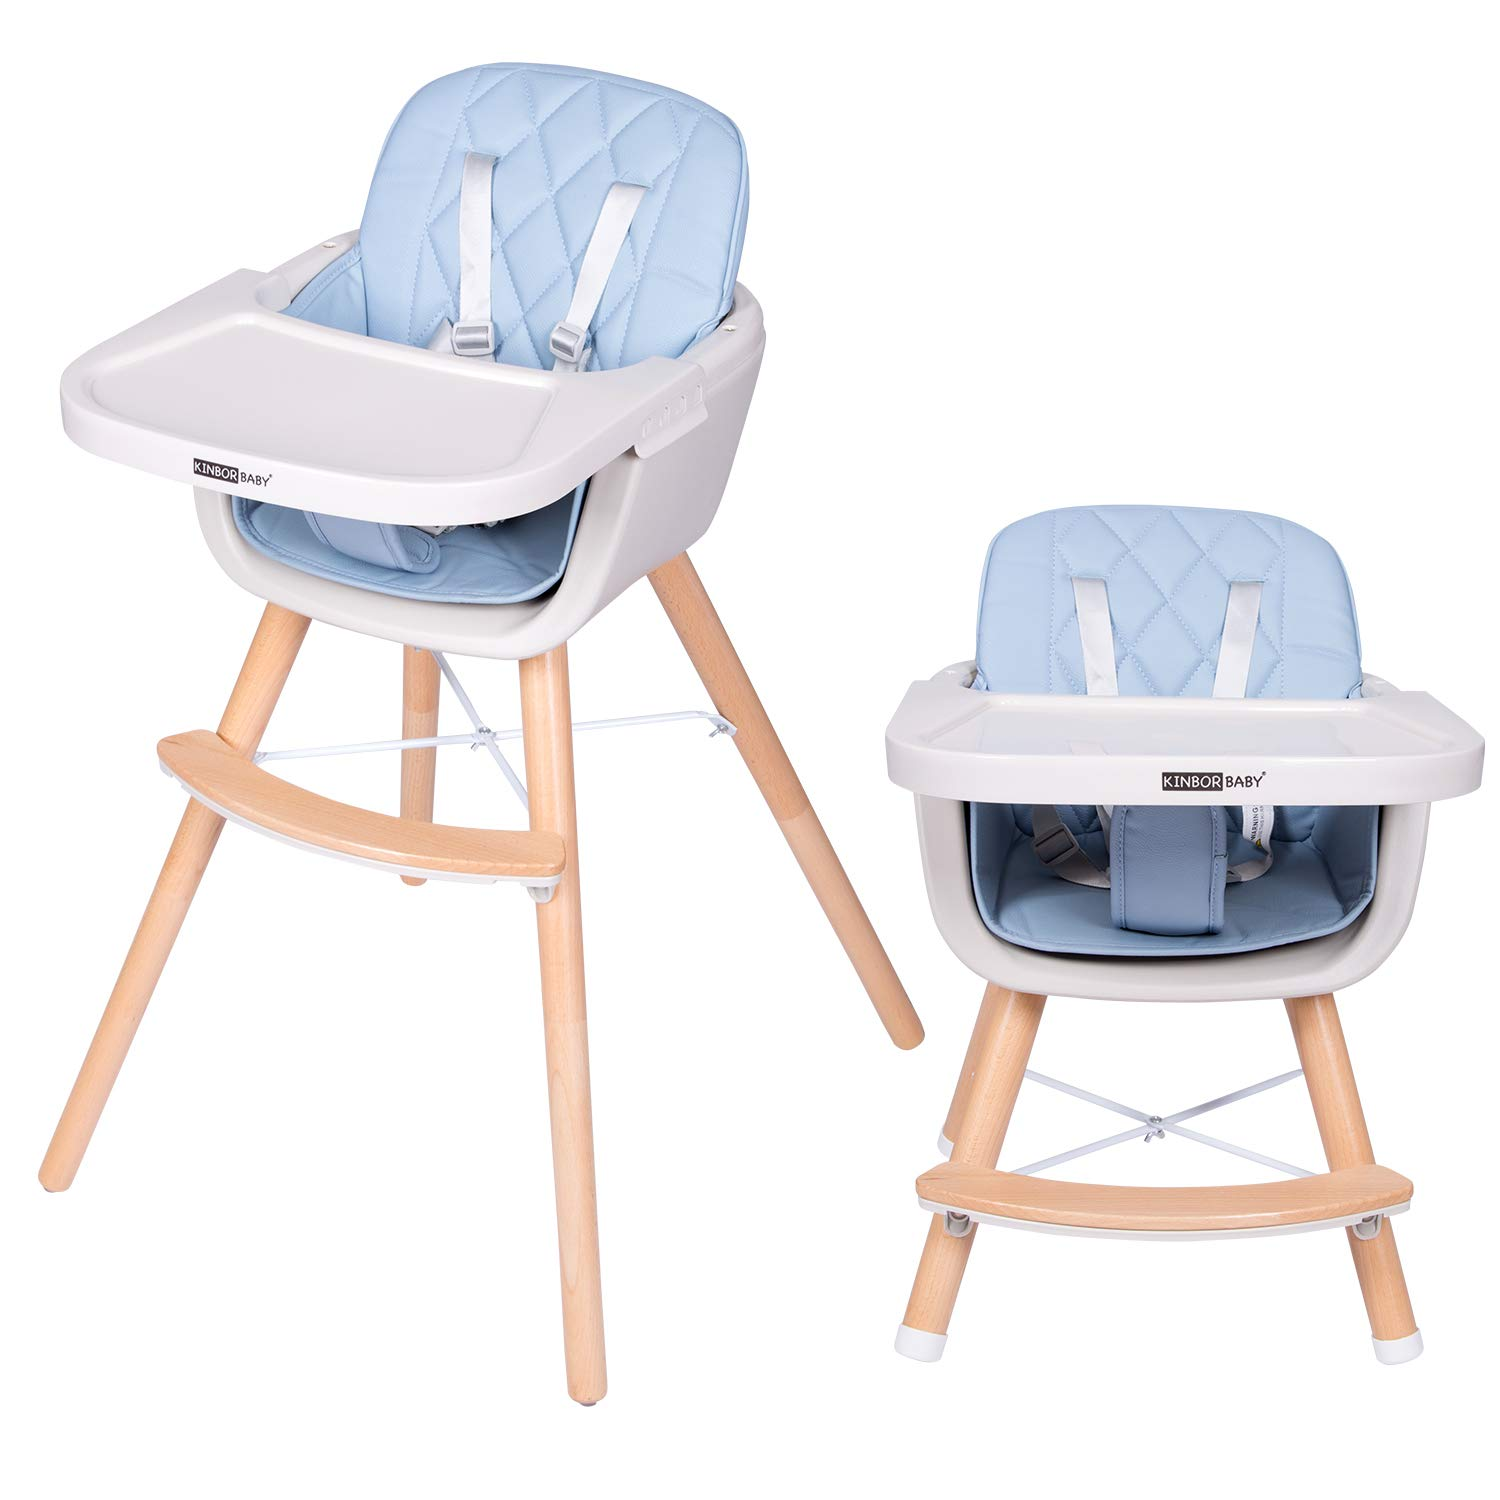 Kinbor Baby Wooden High Chair Toddlers 3 in 1 Convertible Baby Highchair Solution for Babies and Infants with Cushion Removable Tray and Adjustable Legs